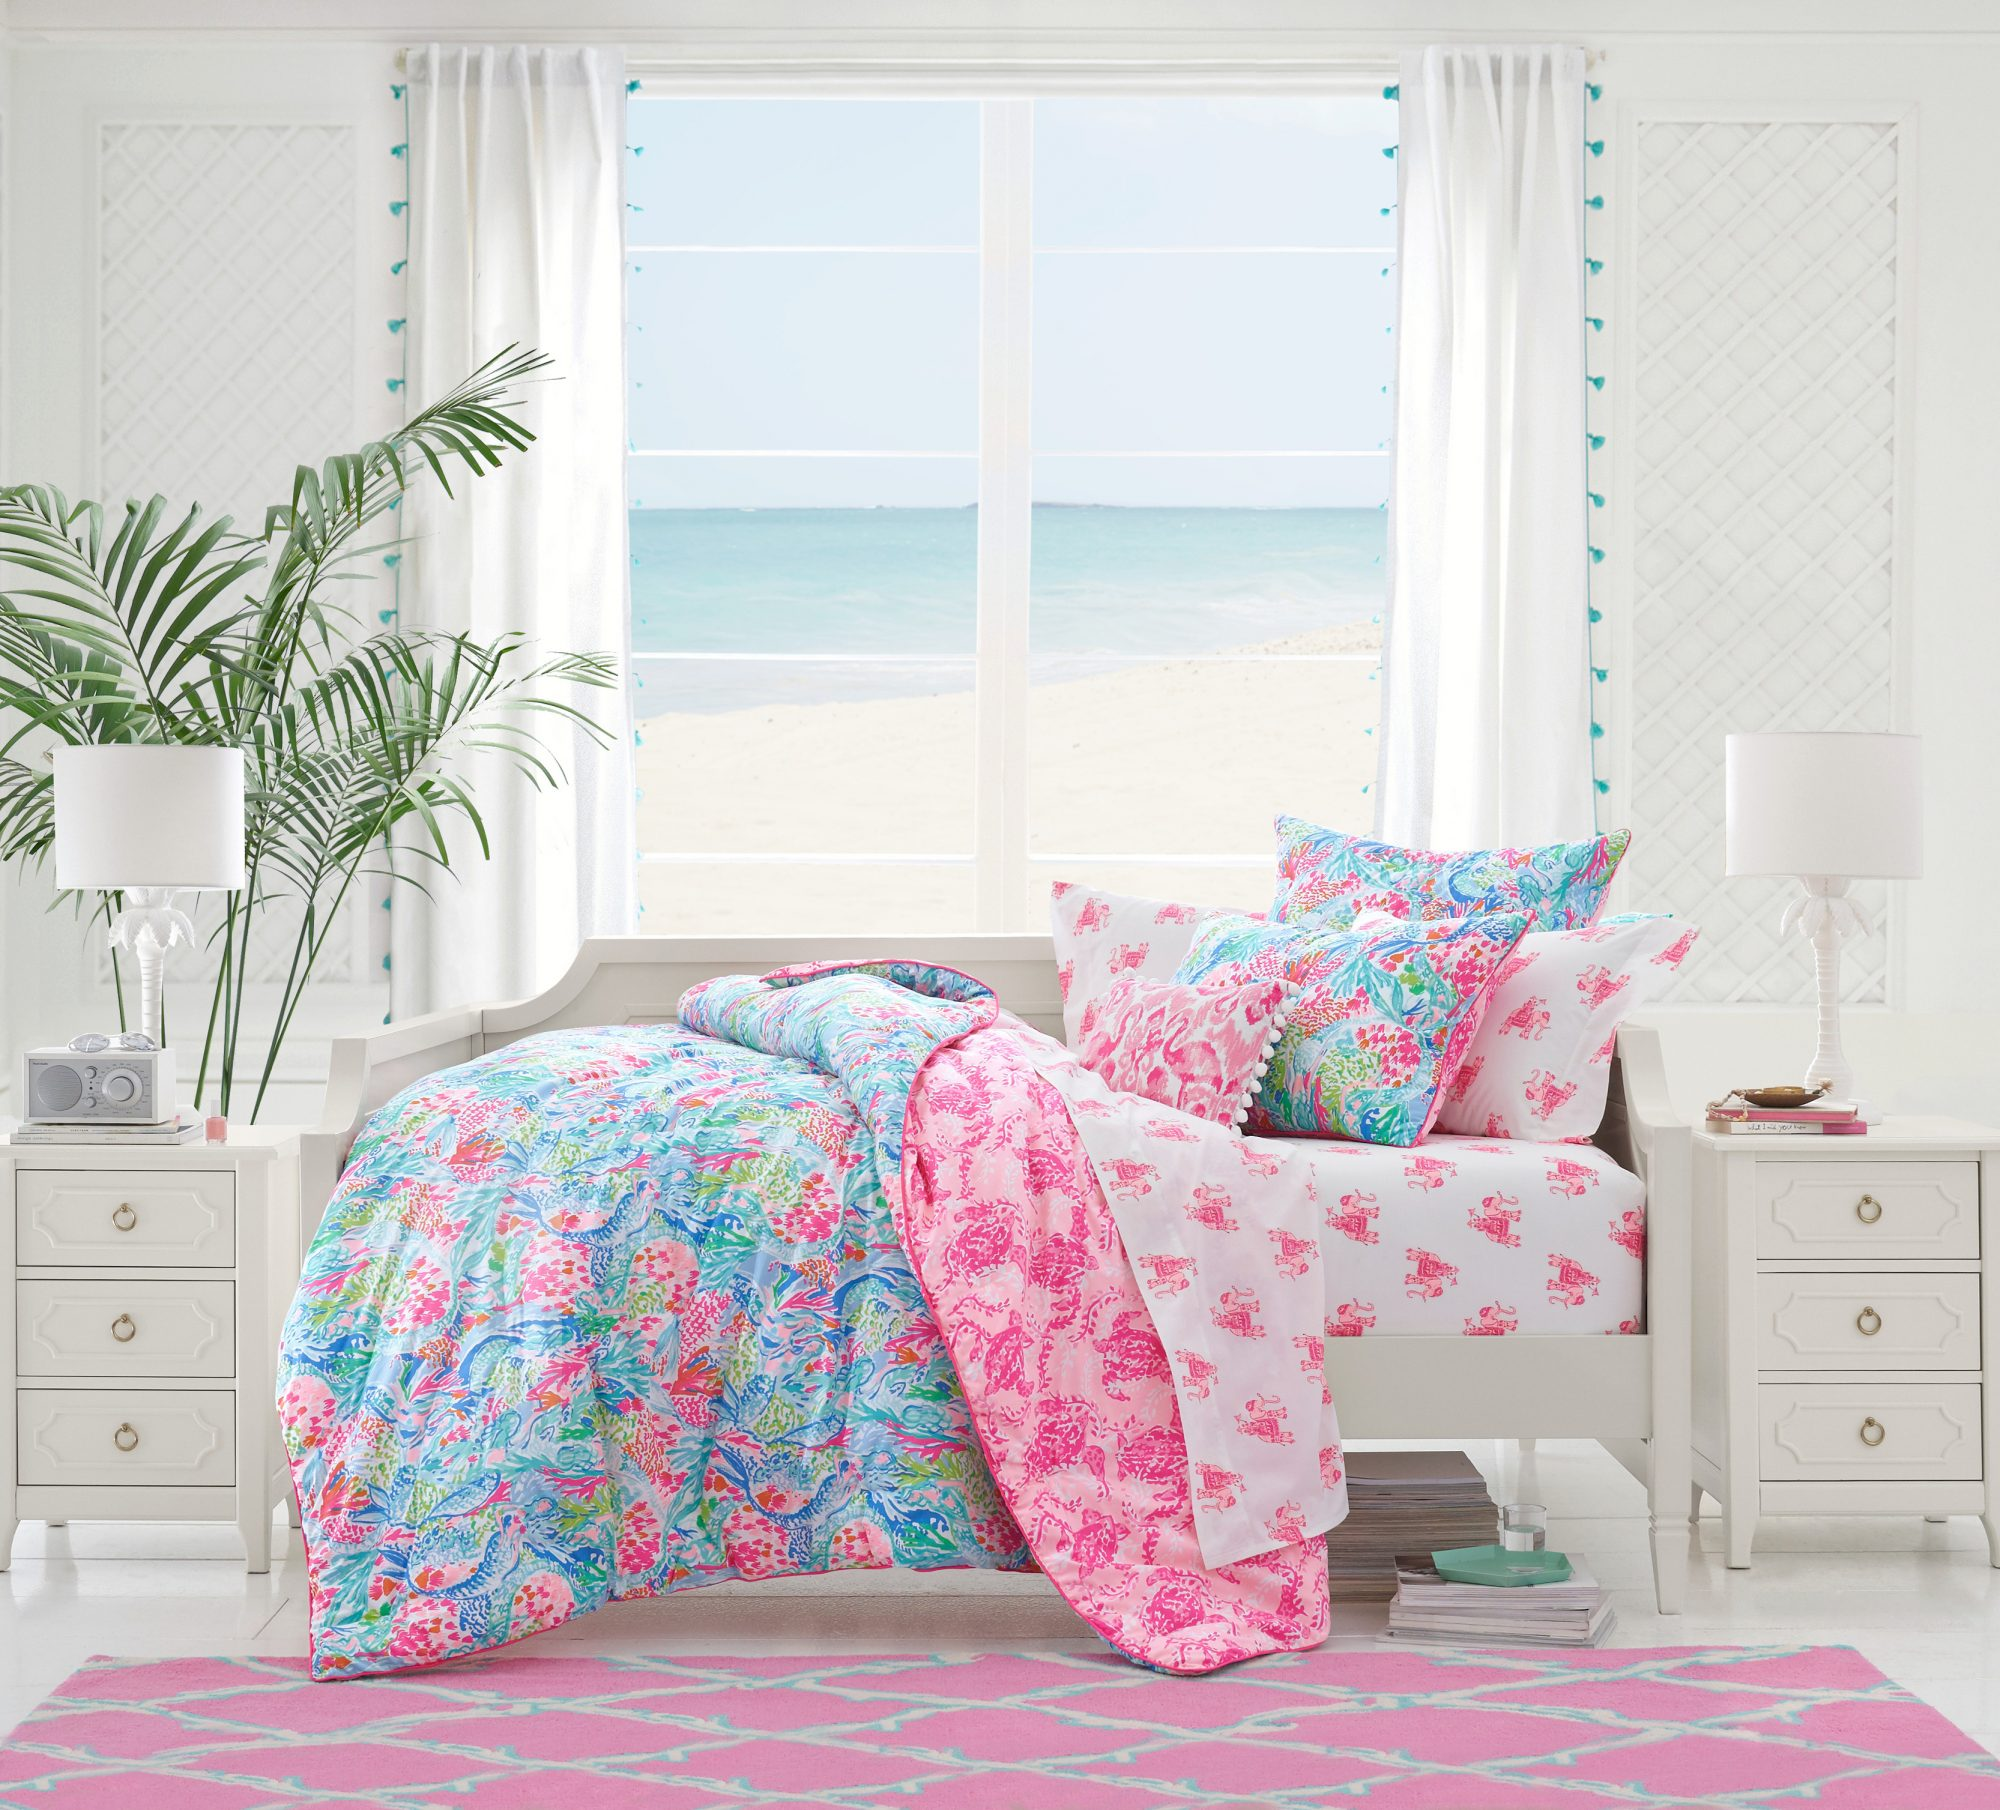 Pottery Barn Kids new Lilly Pulitzer collaboration